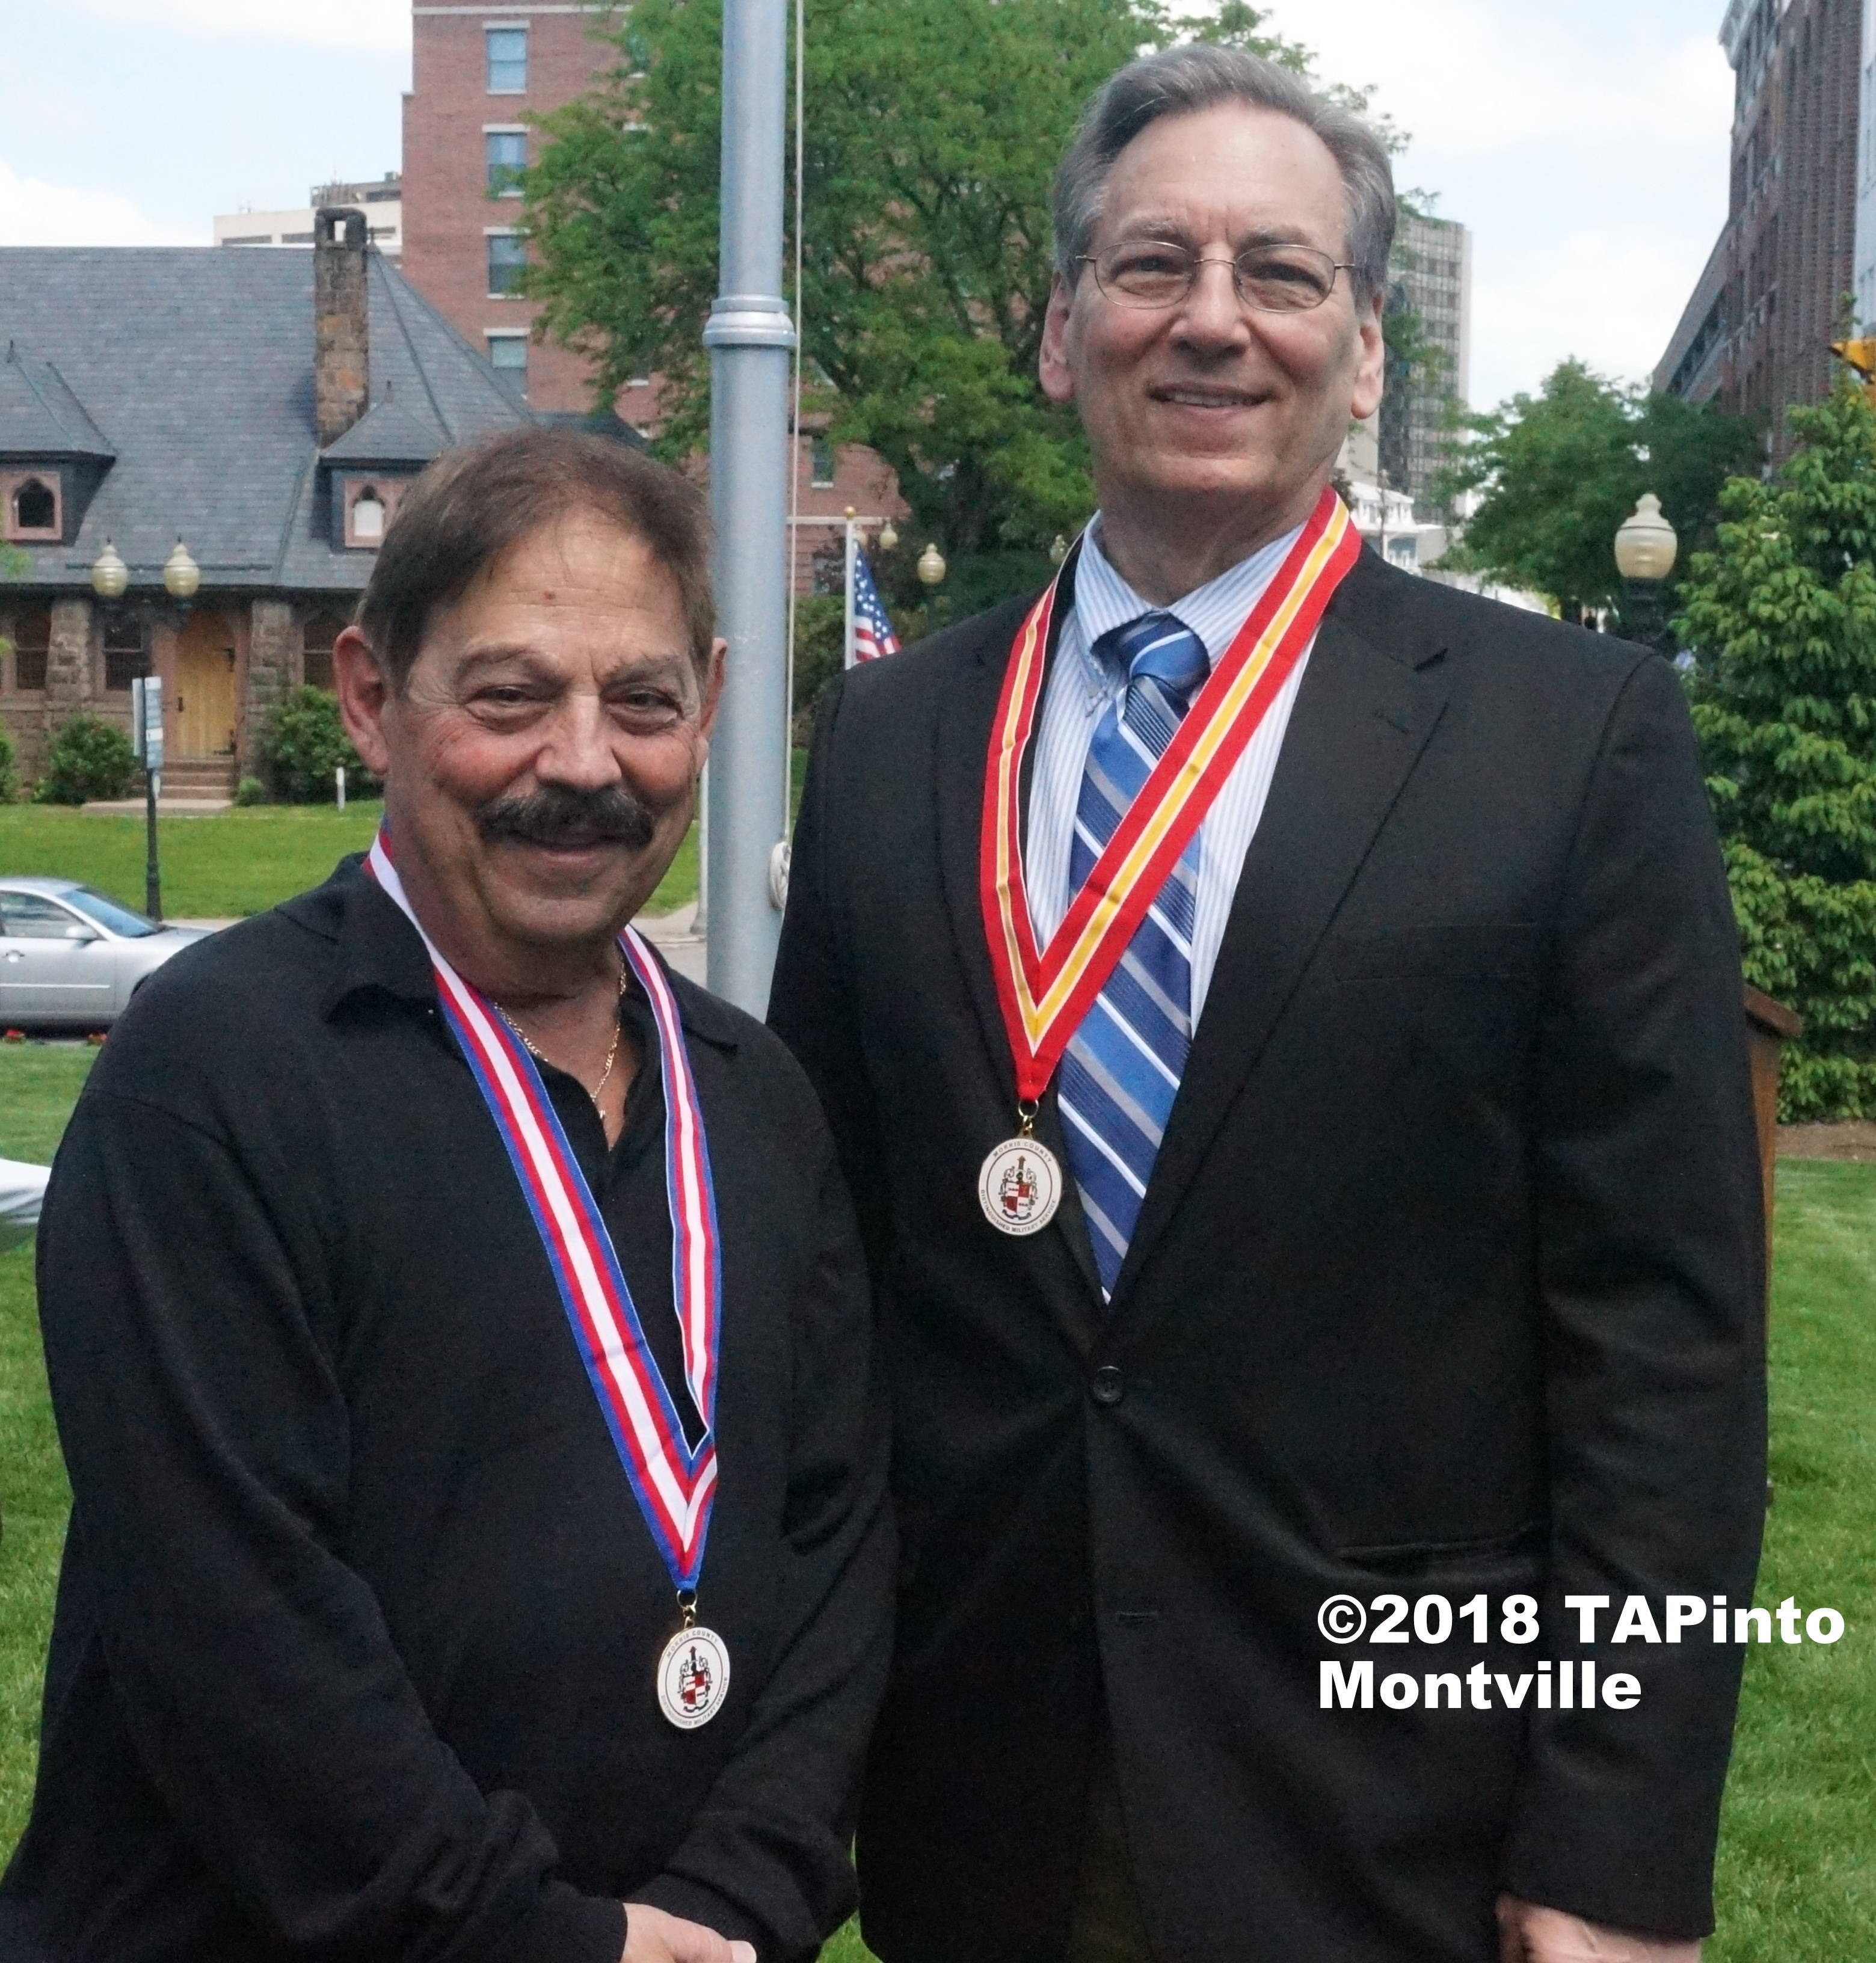 72321089749b45050818_a_John_Mascellino__U.S._Army_and_Kenneth_Hanzel__U.S._Army__with_their_Distinguished_Service_Award_Medals__2018_TAPinto_Montville.JPG